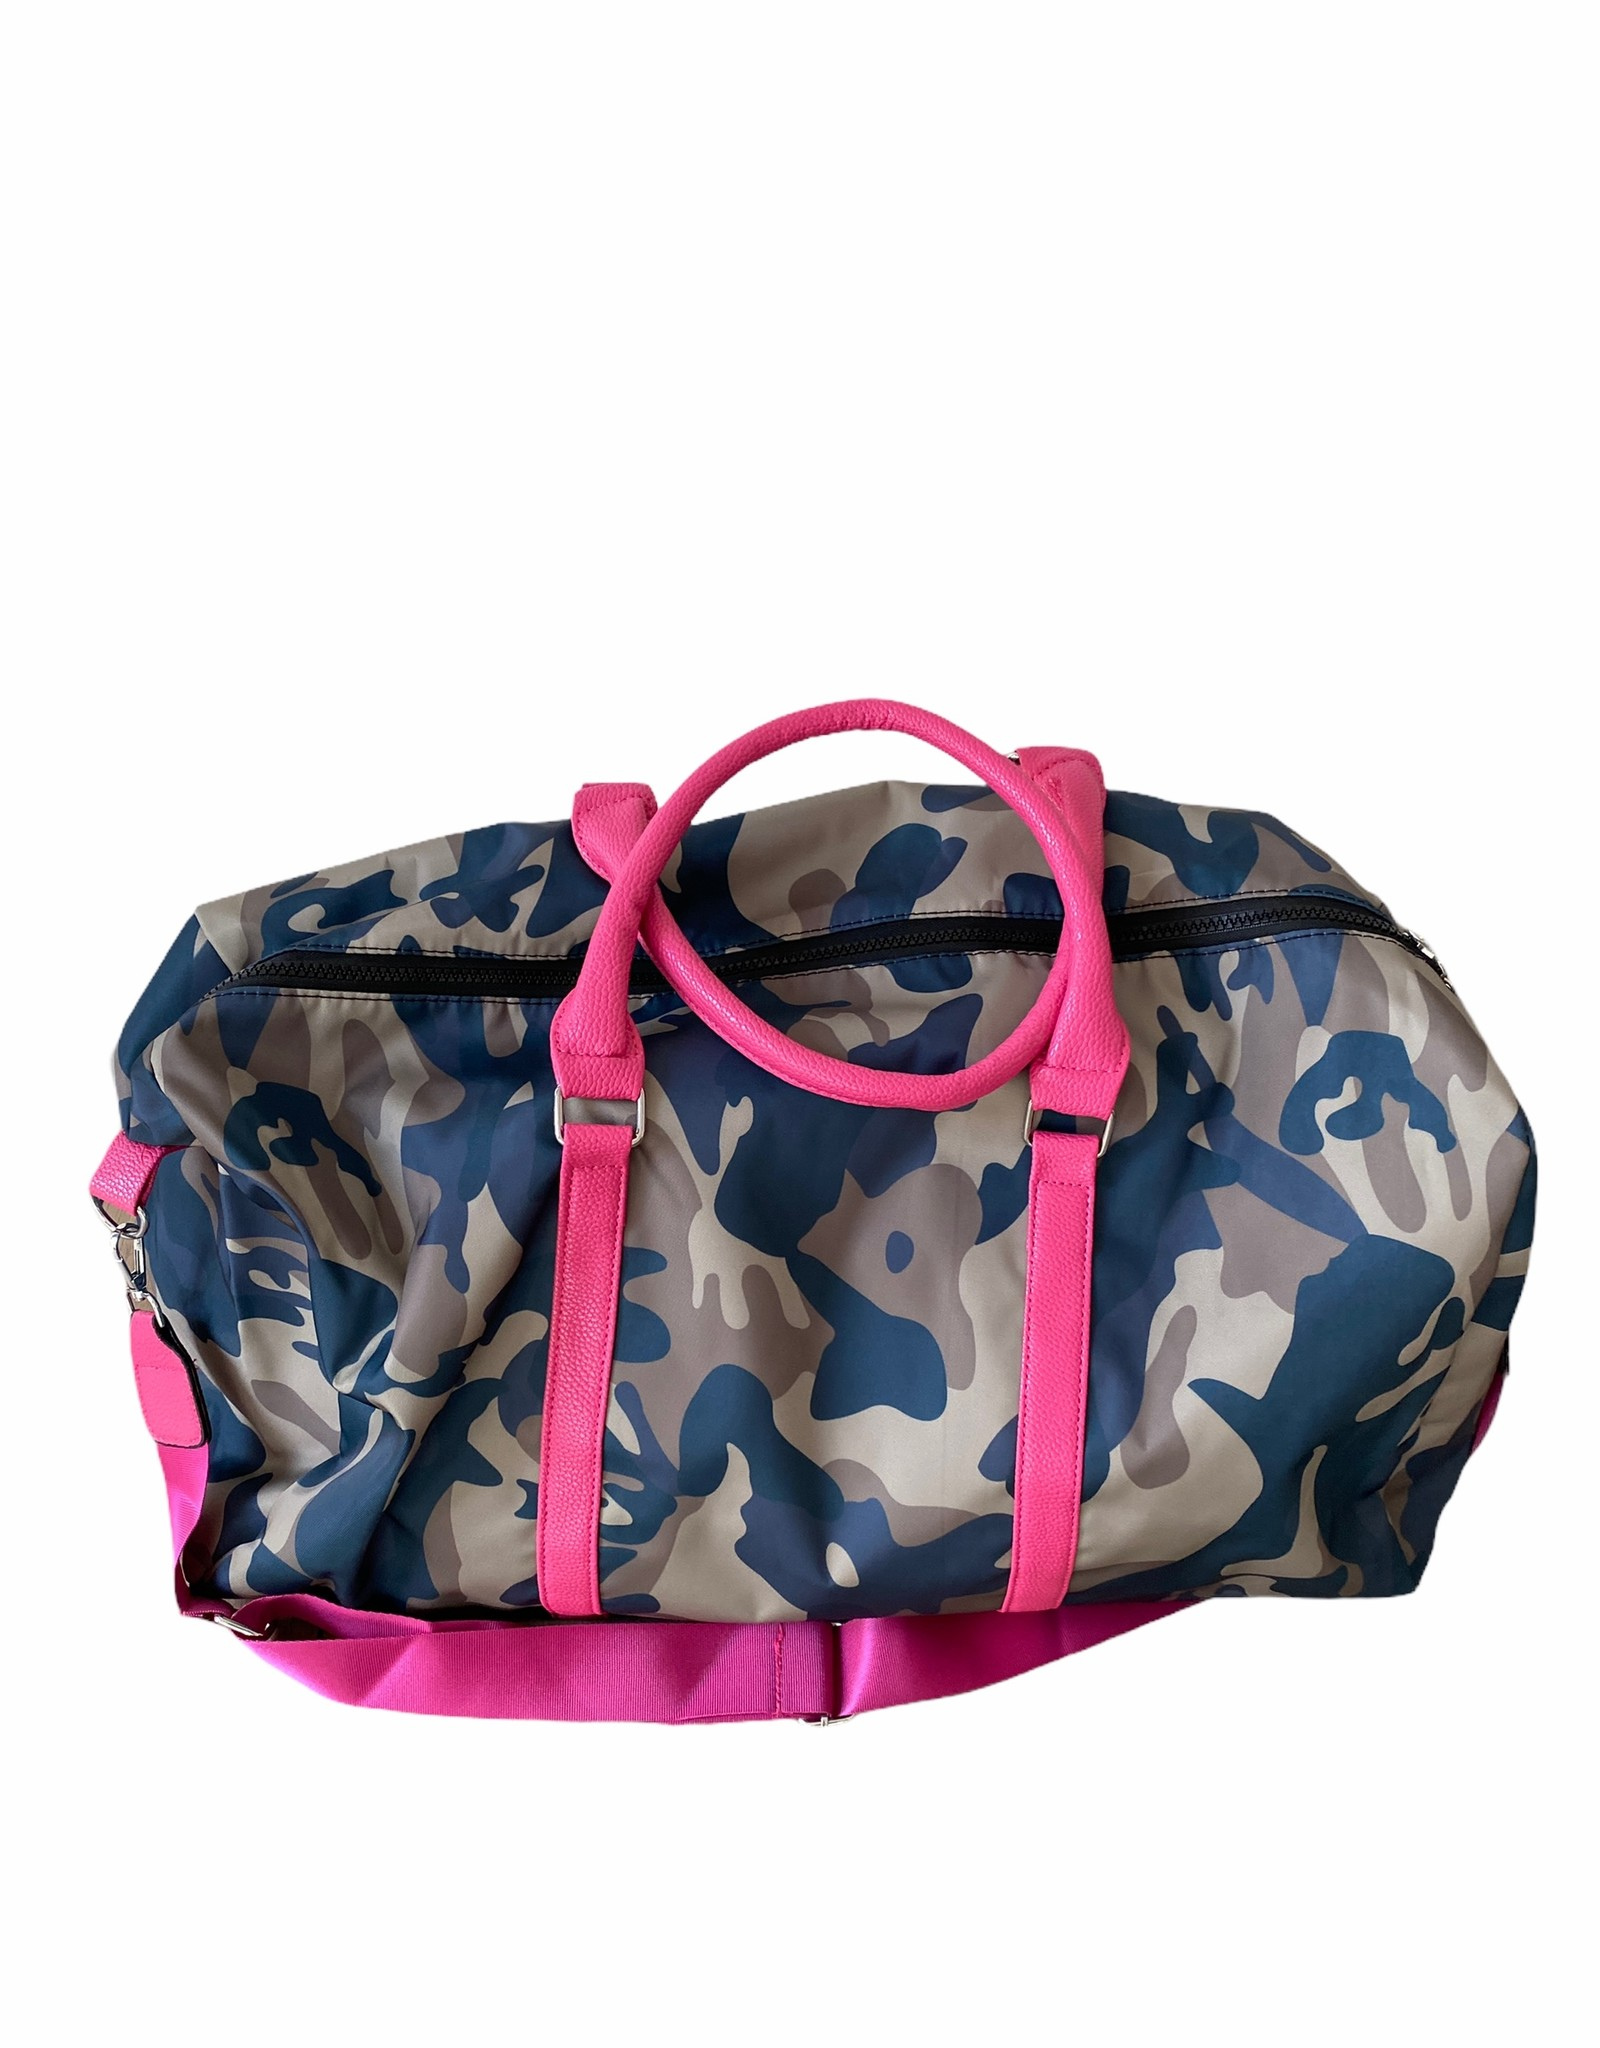 Duffelbag with camouflage fabric.  Handcuffs in artificial leather and long belt in fabric.